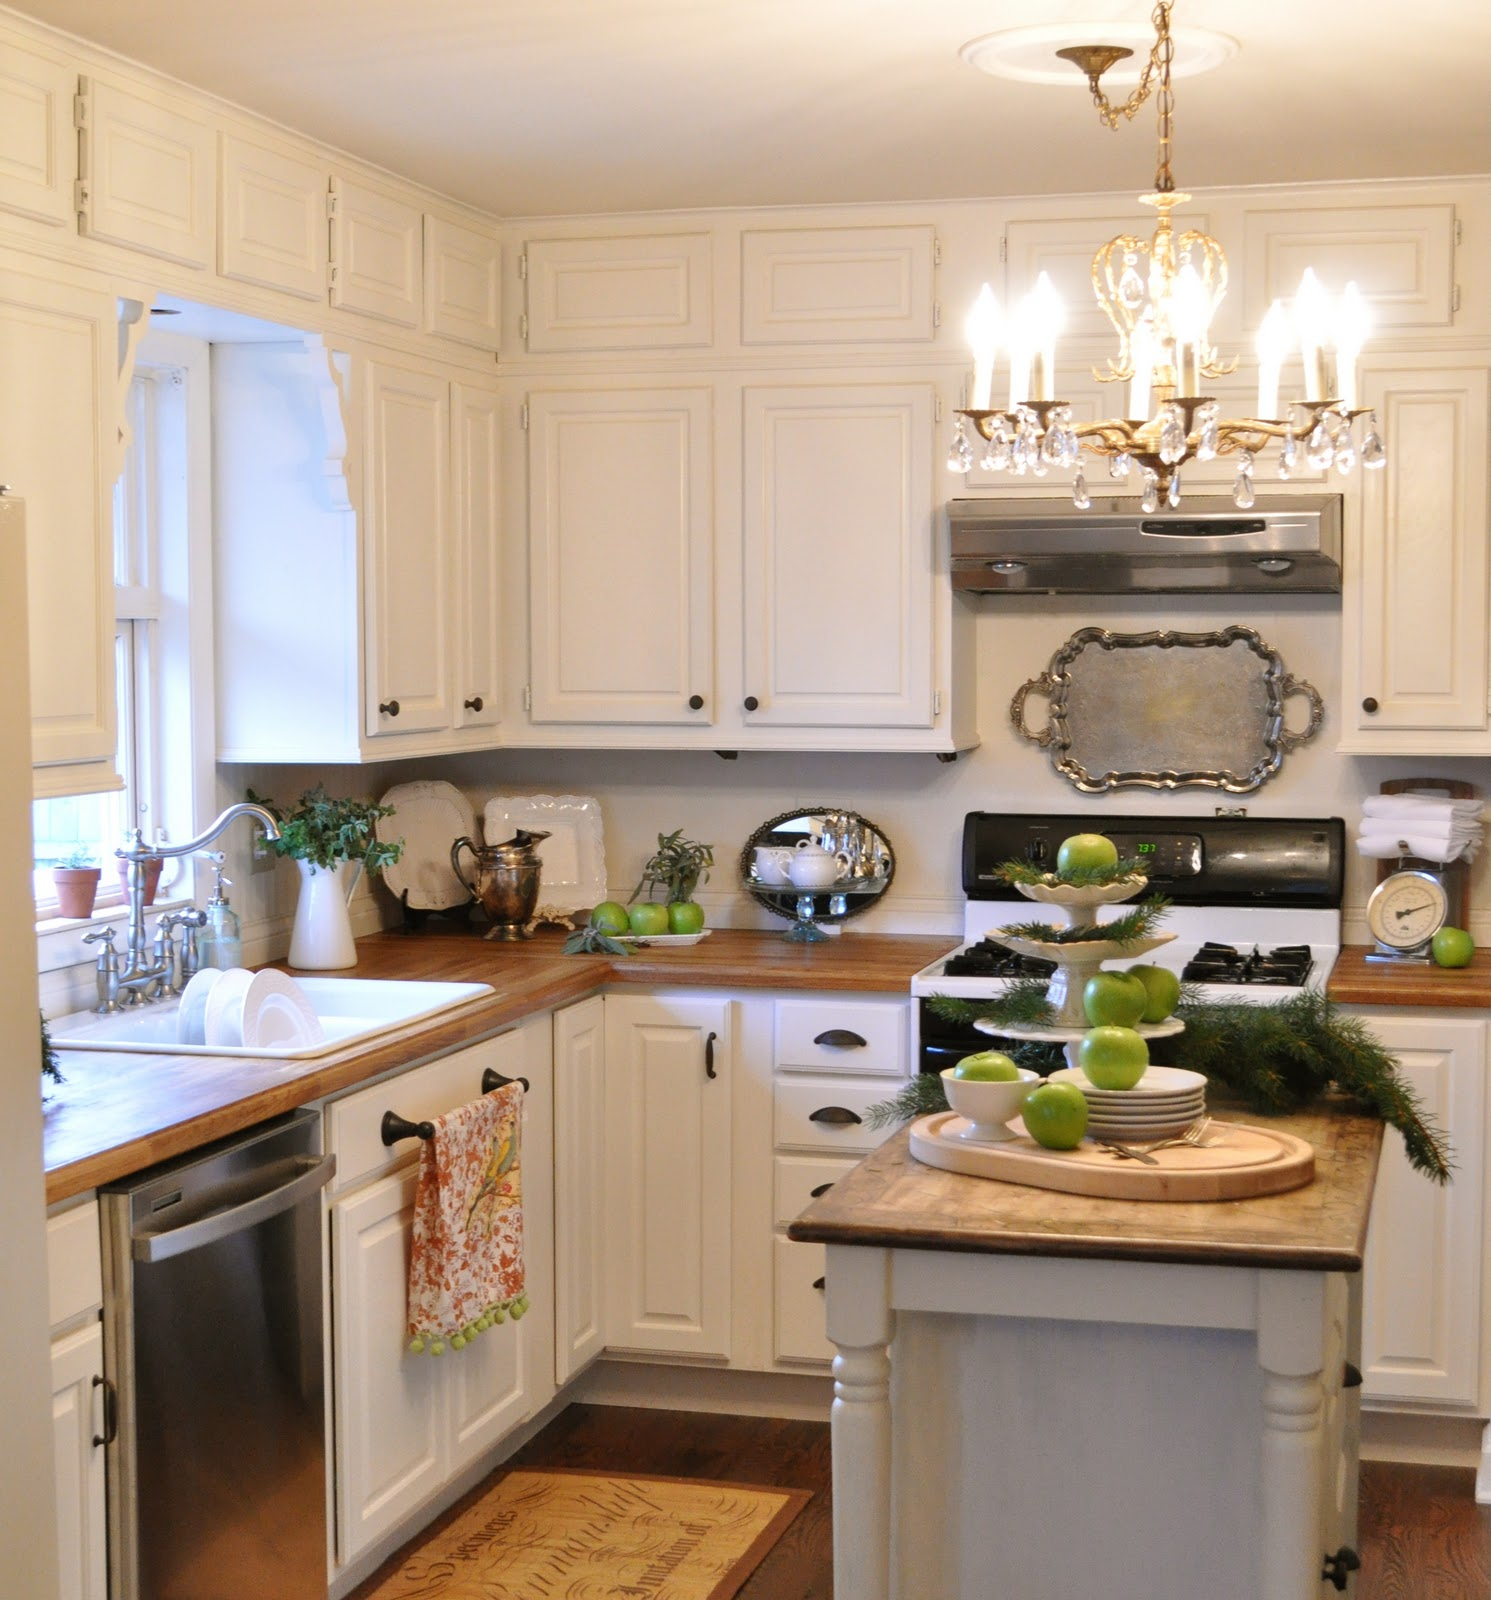 My complete kitchen remodel story for about $12,000  Jennifer Rizzo